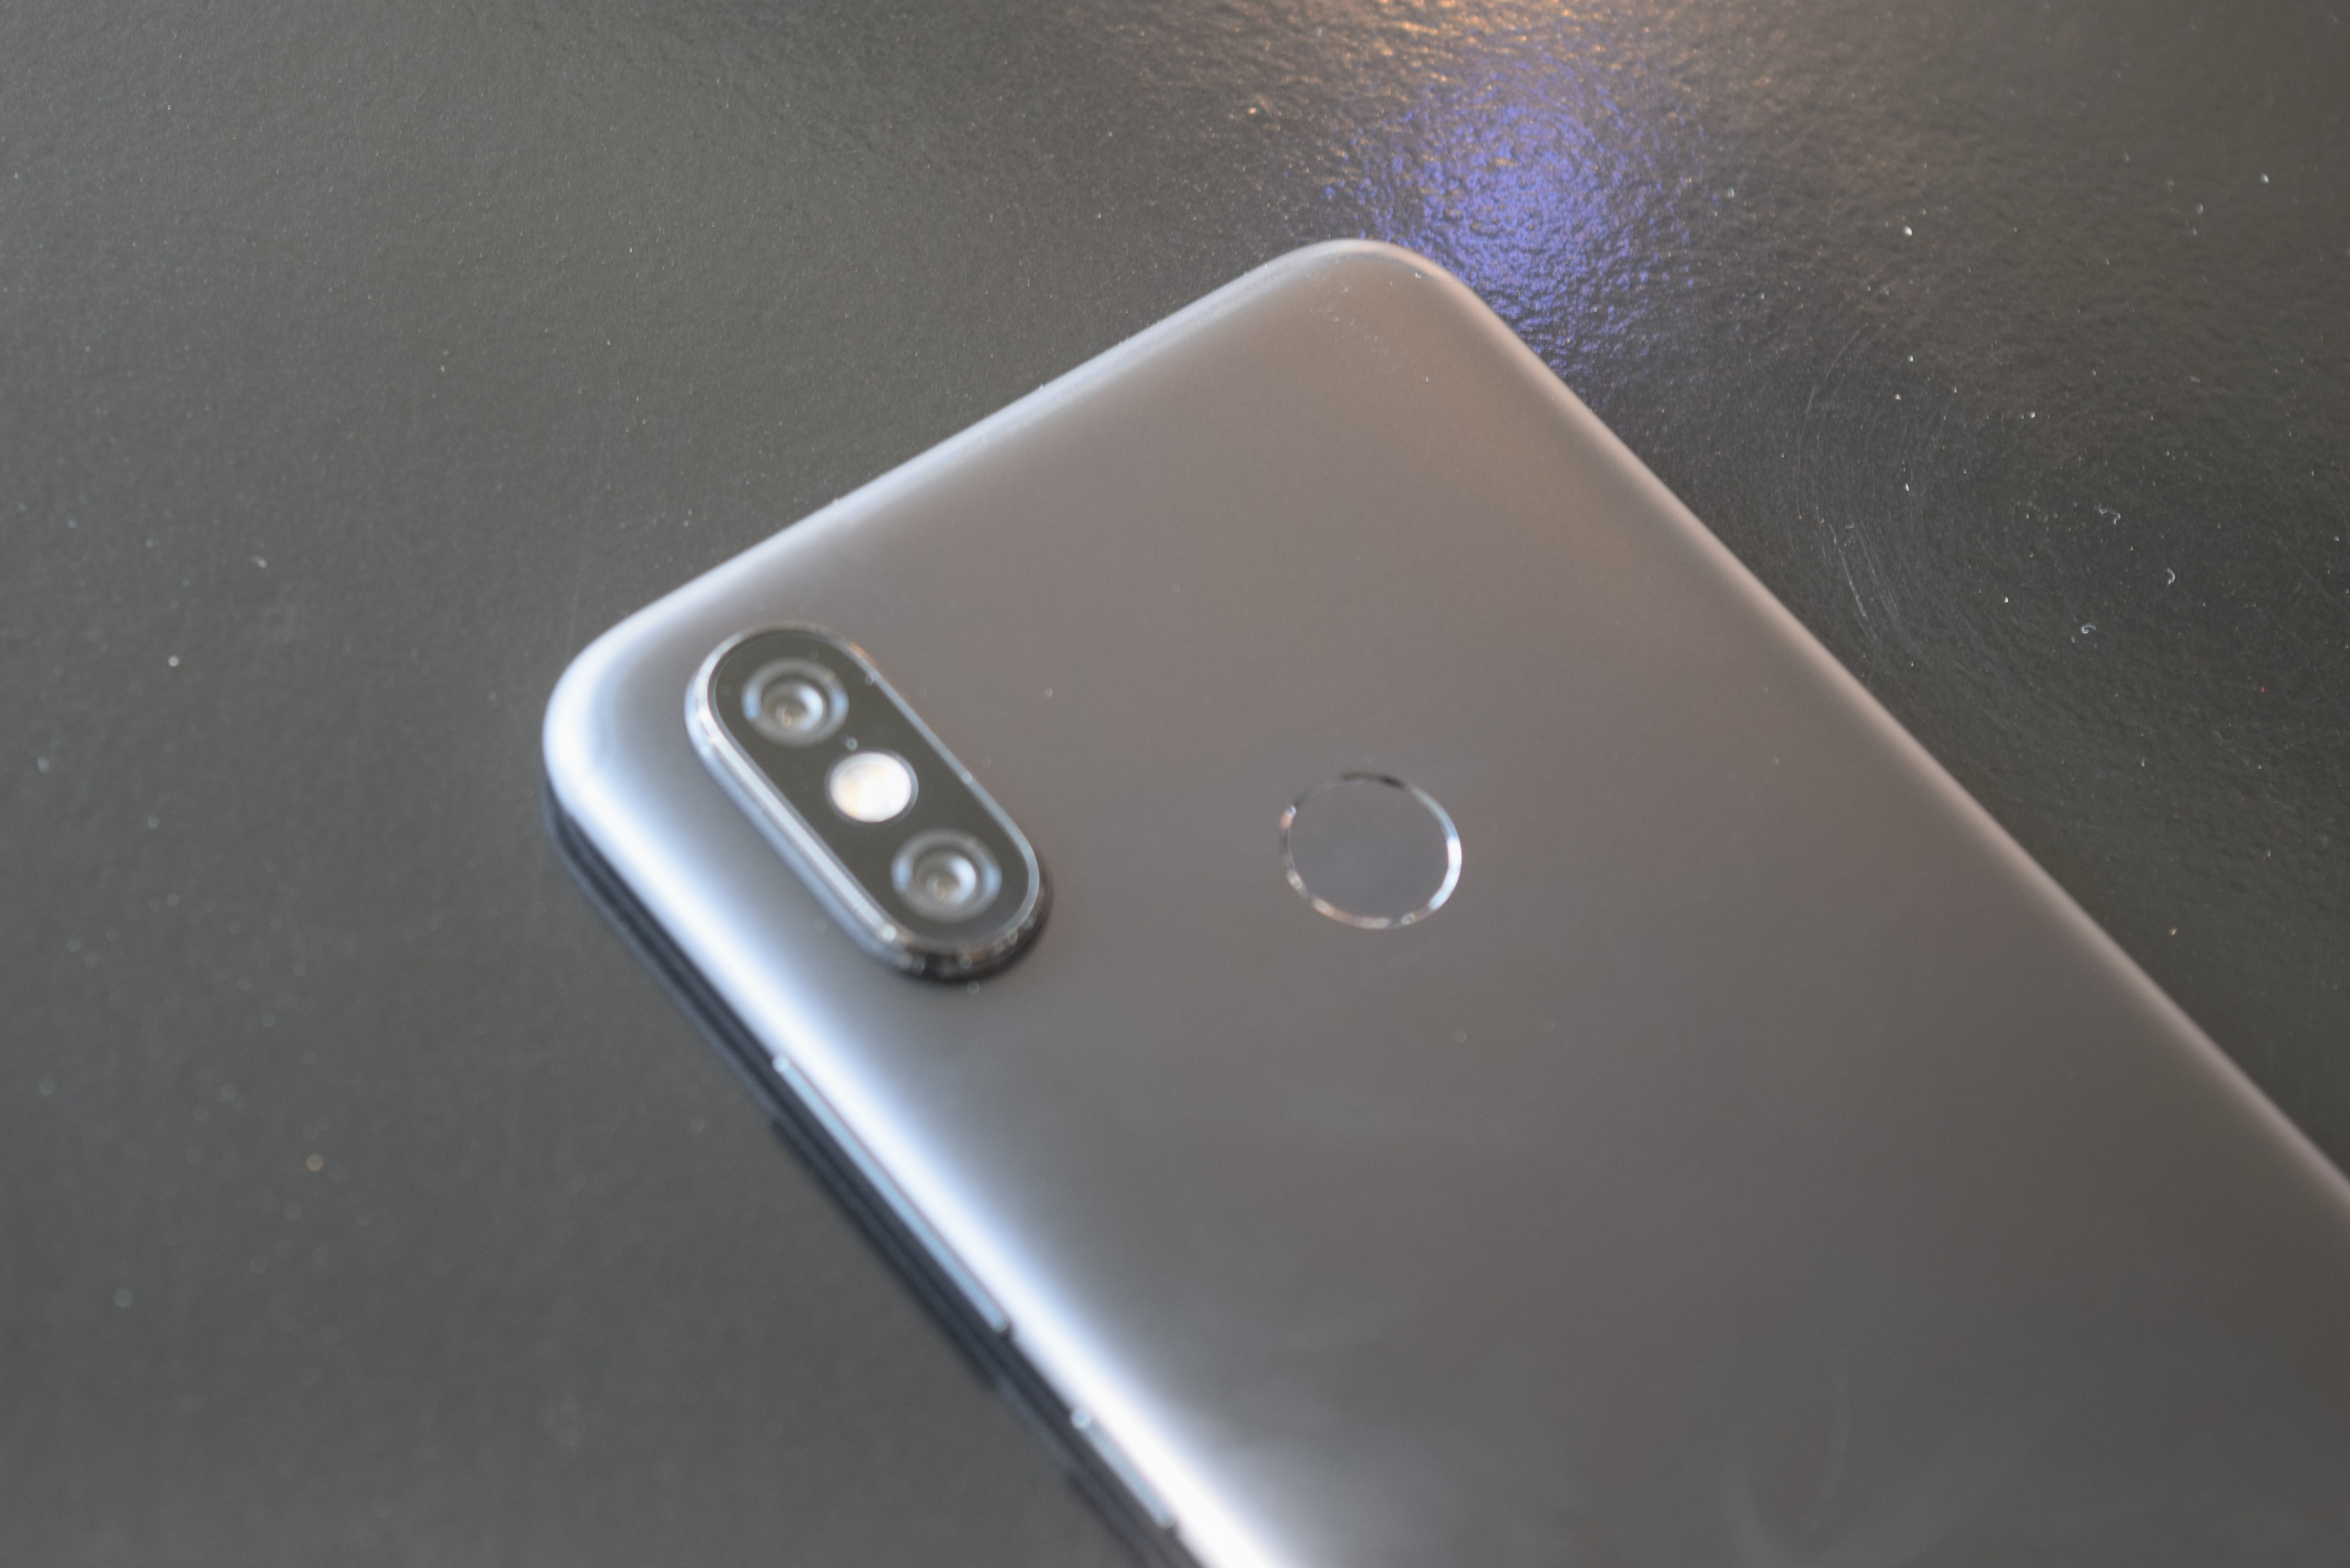 Mi A2 hands-on